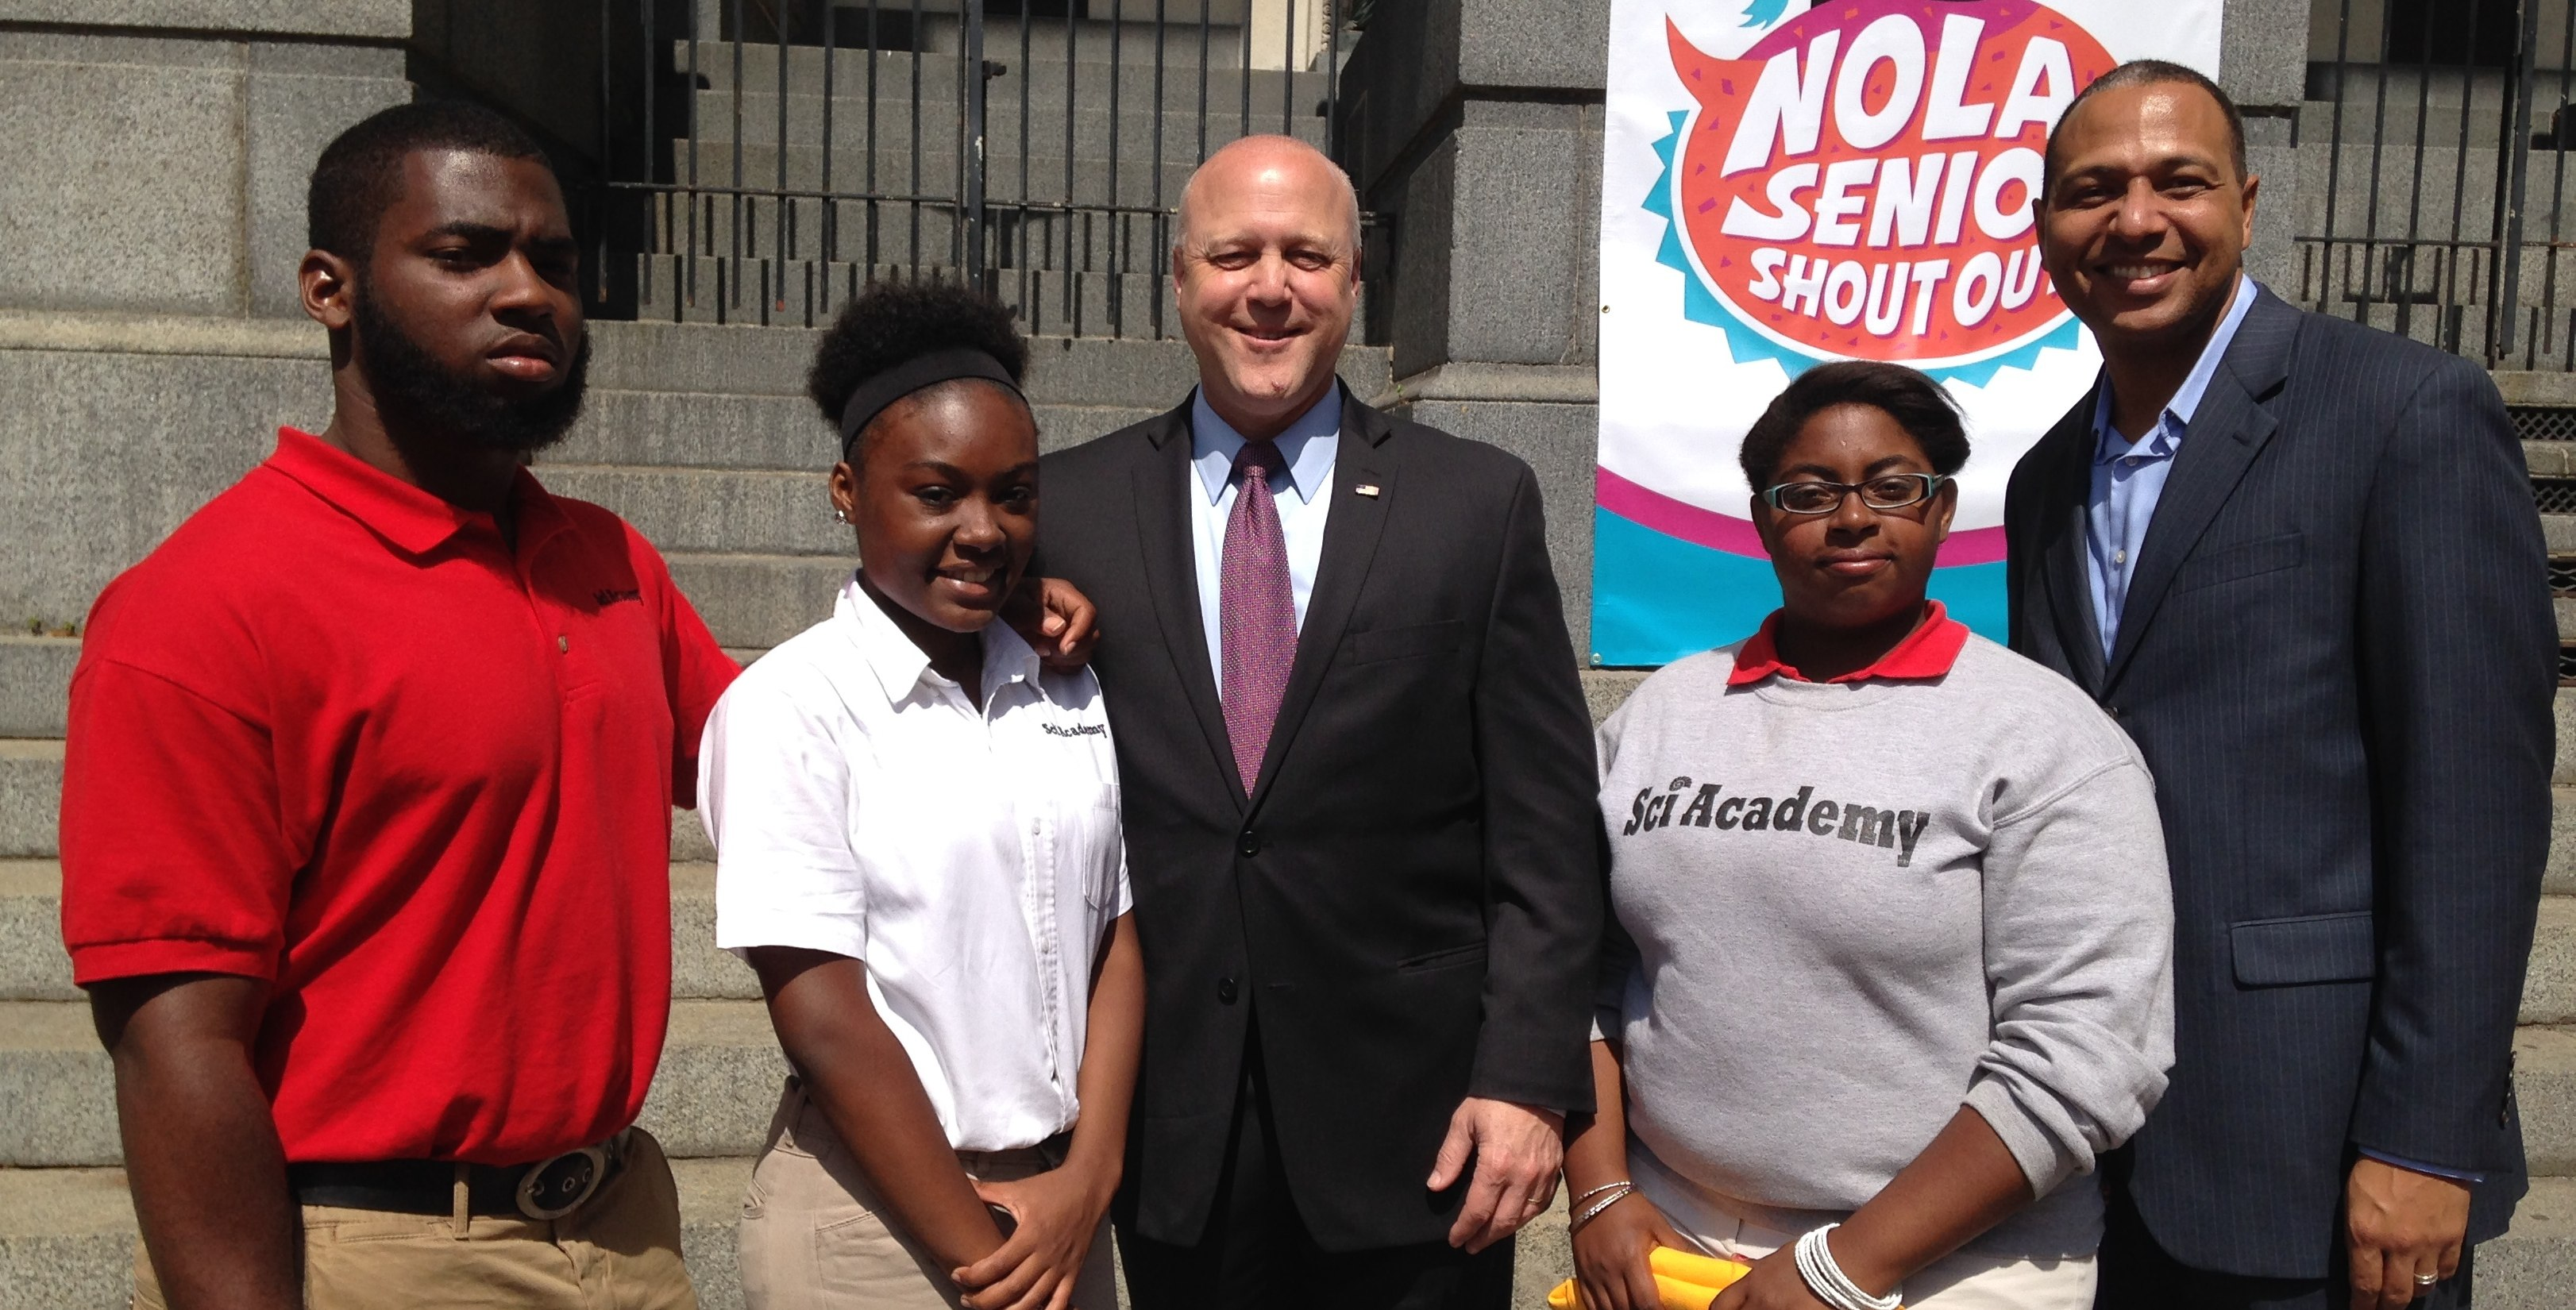 College-bound seniors pose with New Orleans Mayor Mitch Landrieu (center) and RSD Supt. Patrick Dobard (right).